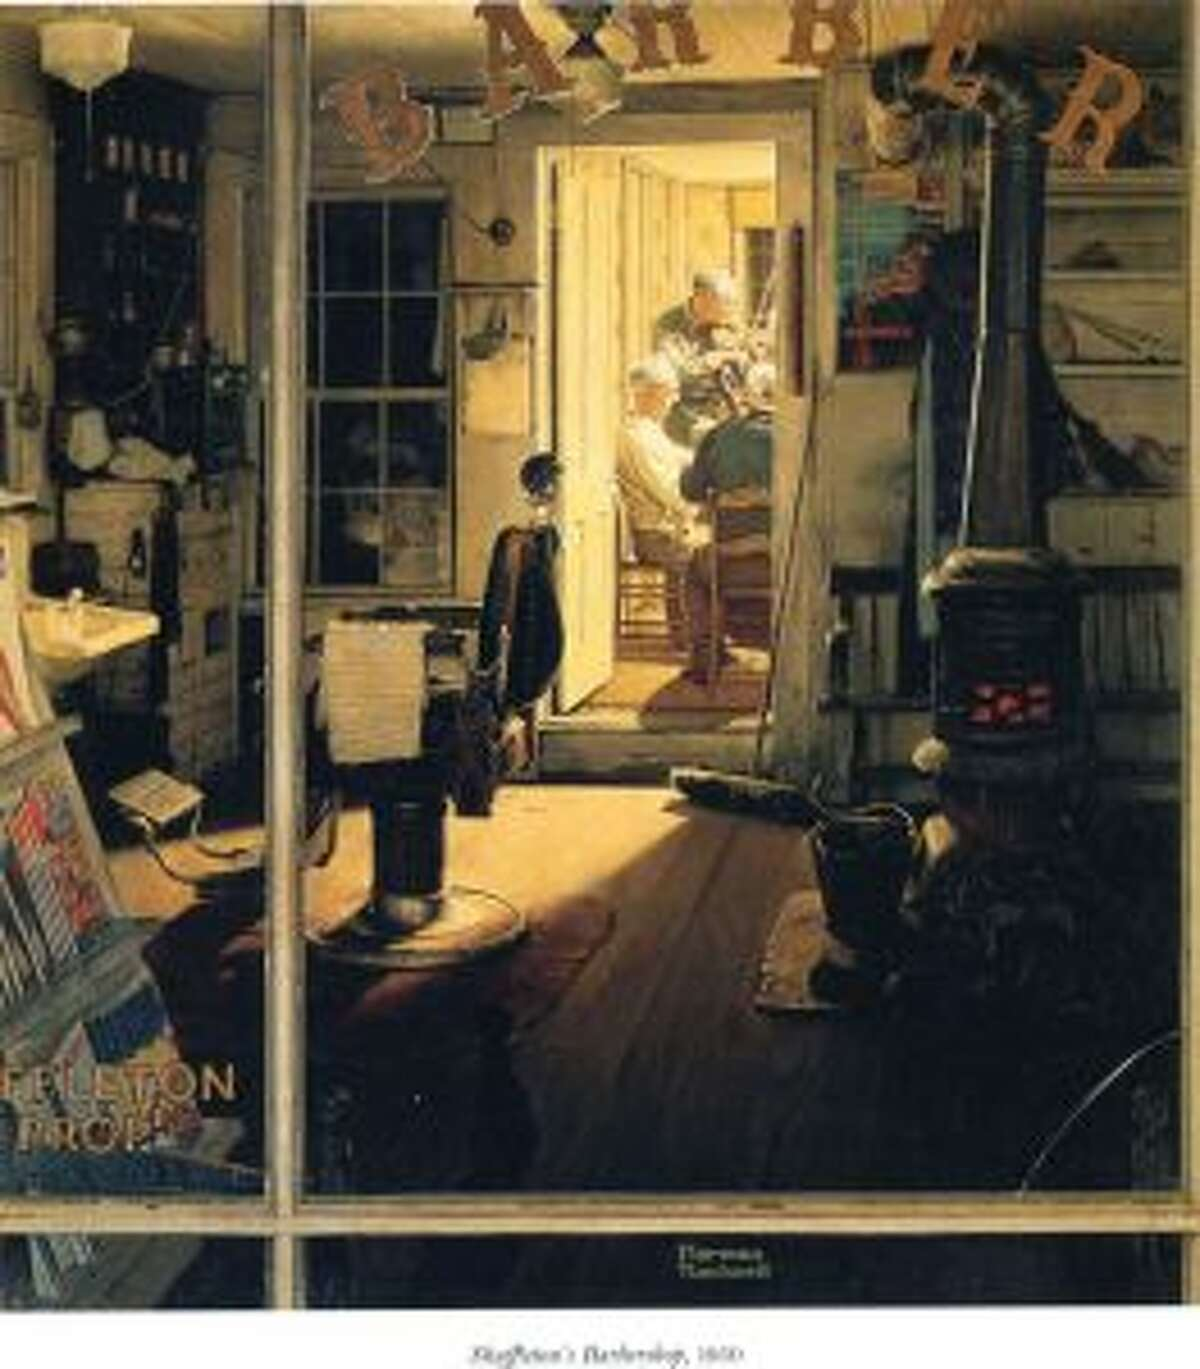 """""""Shuffleton's Barbershop"""" was a Norman Rockwell illustration for the cover of The Saturday Evening Post in 1950. The original painting is among those listed to be auctioned to raise money for the Berkshire Museum."""